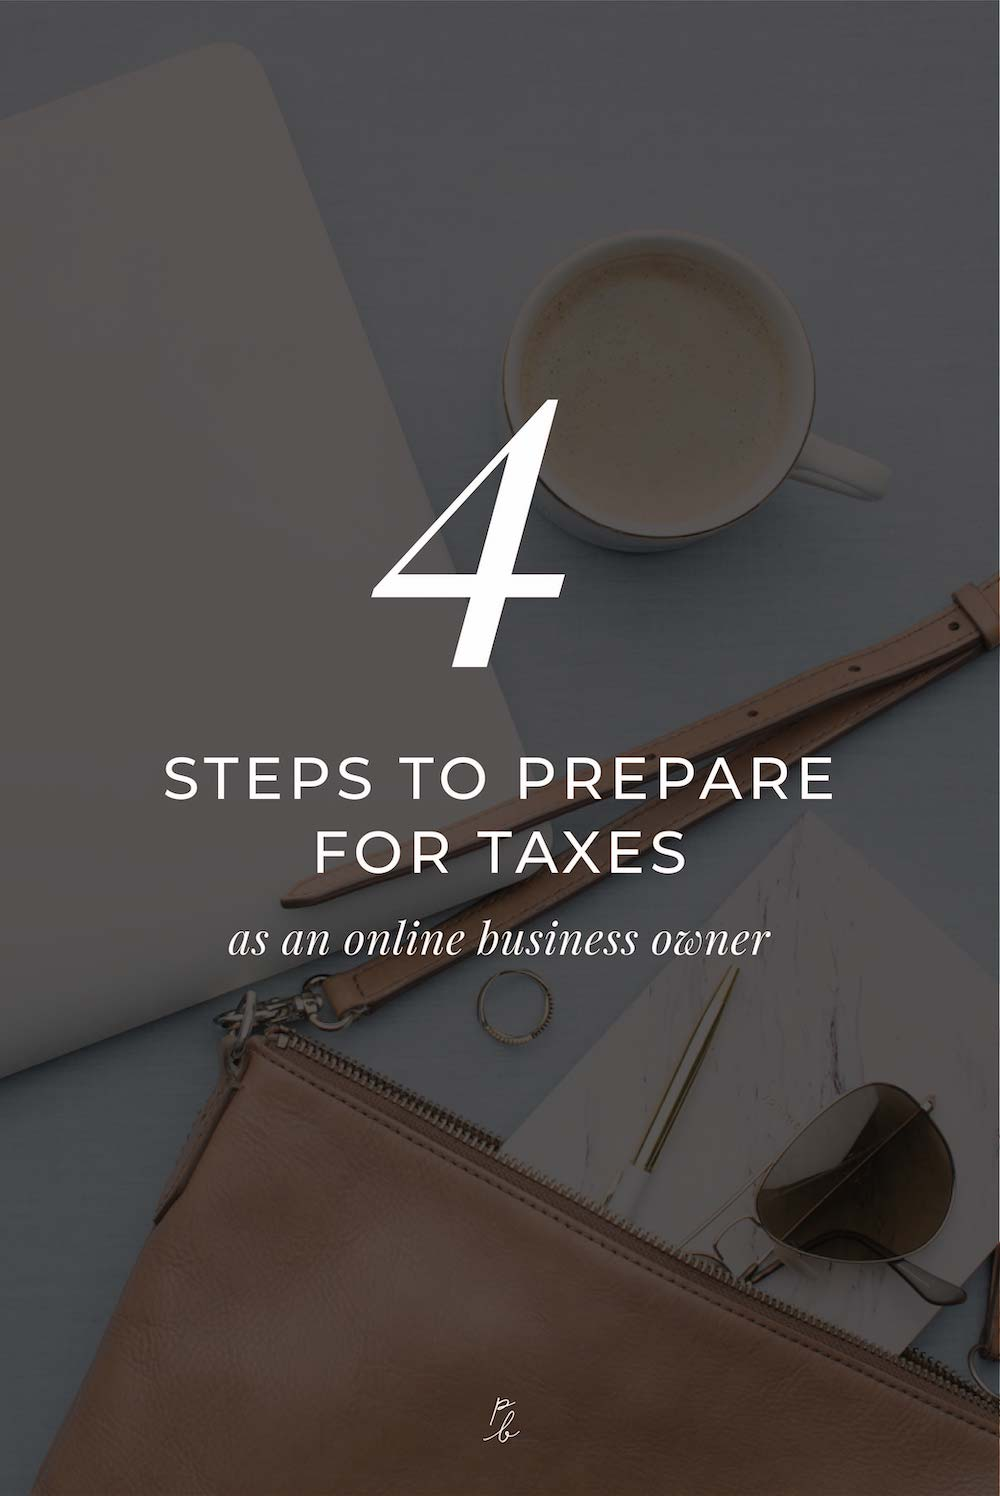 4 steps to prepare for taxes as an online business owner-2.jpg